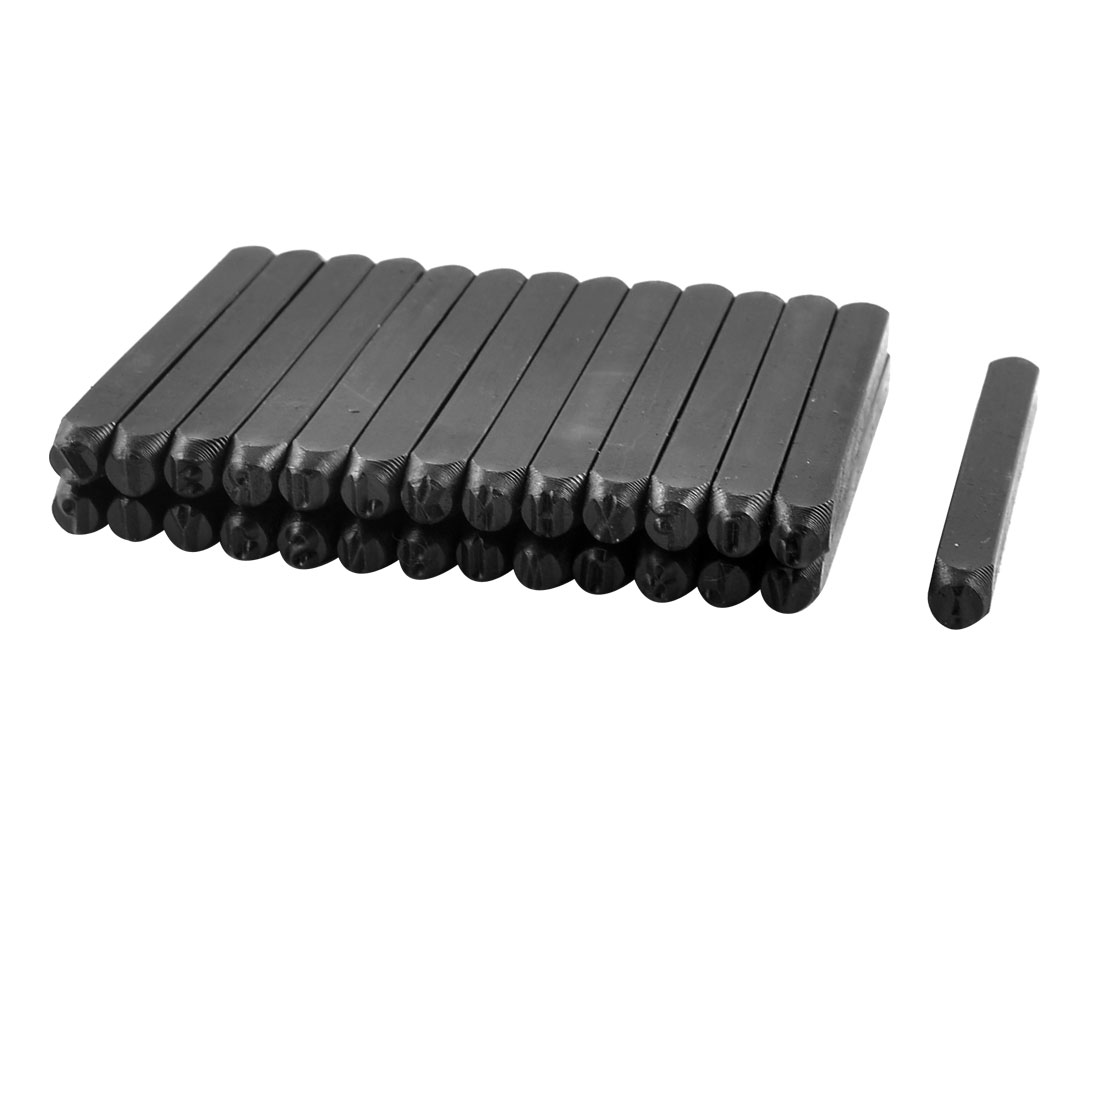 Straight Shank 4mm A-Z Steel Number Stamps Punch Set 26 in 1